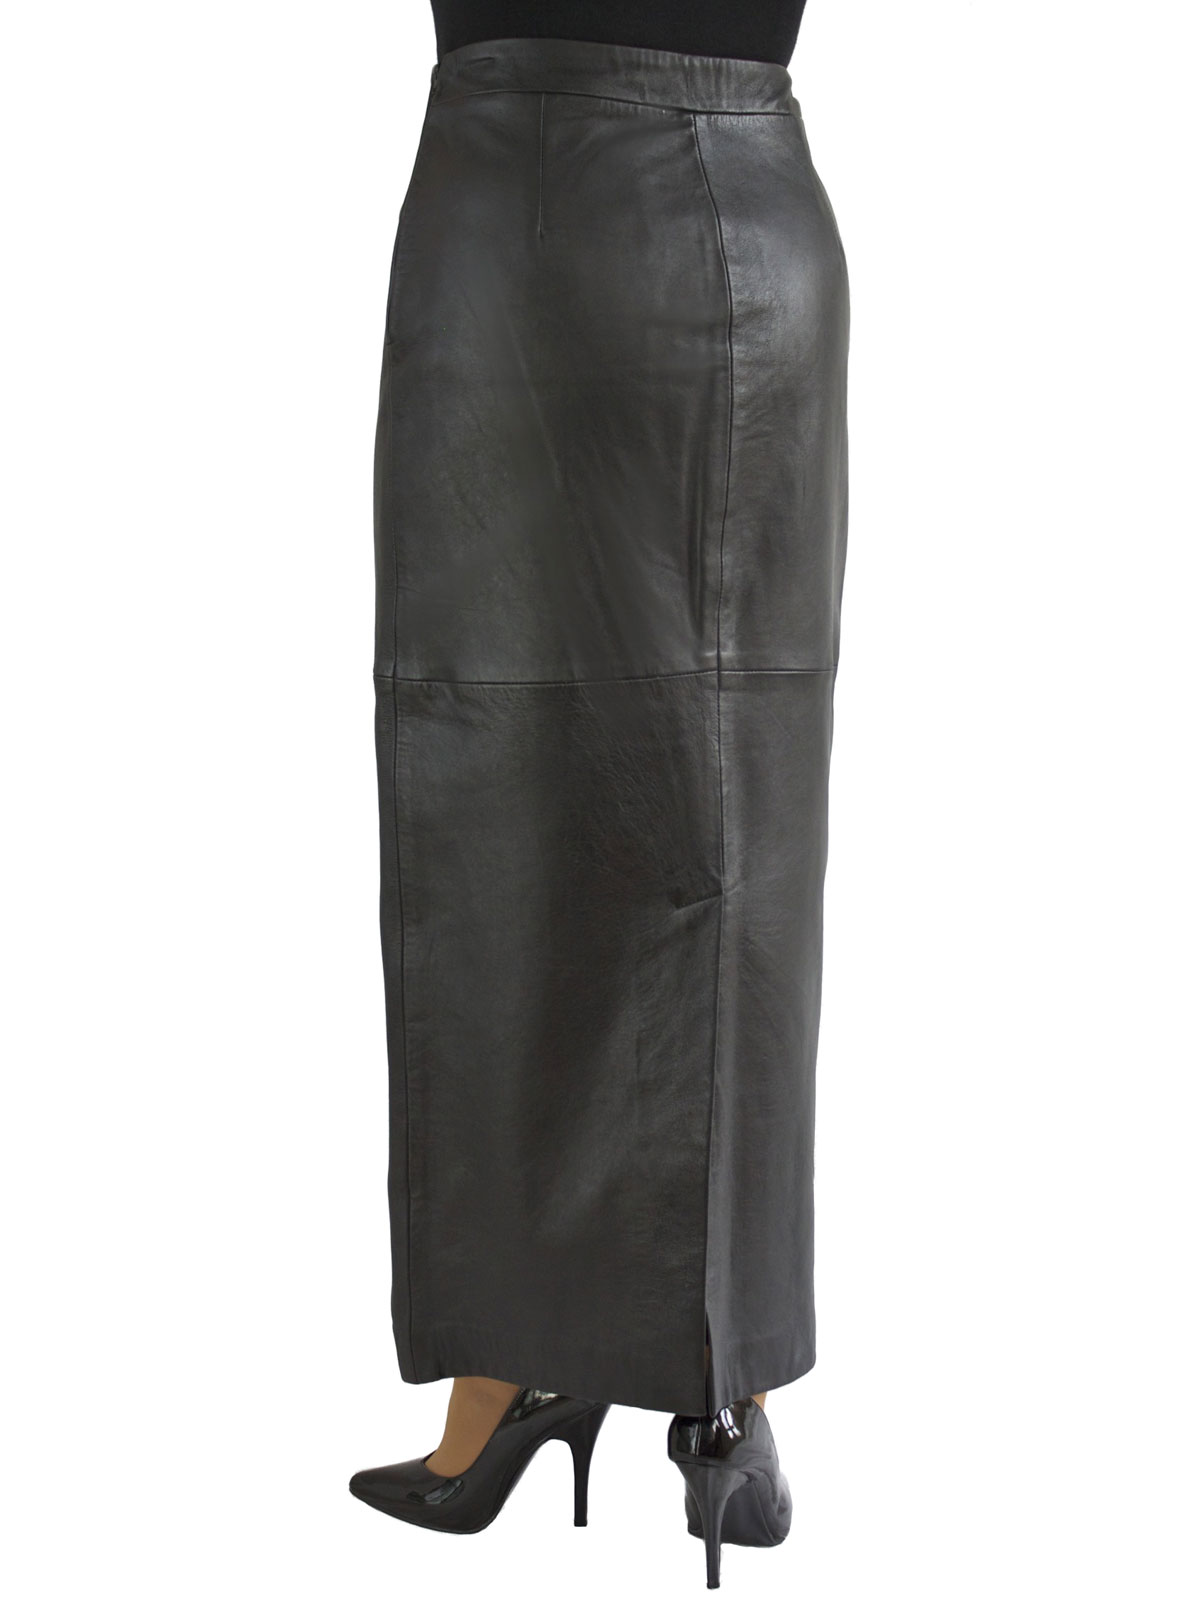 Leather pencil skirt sale – Modern skirts blog for you